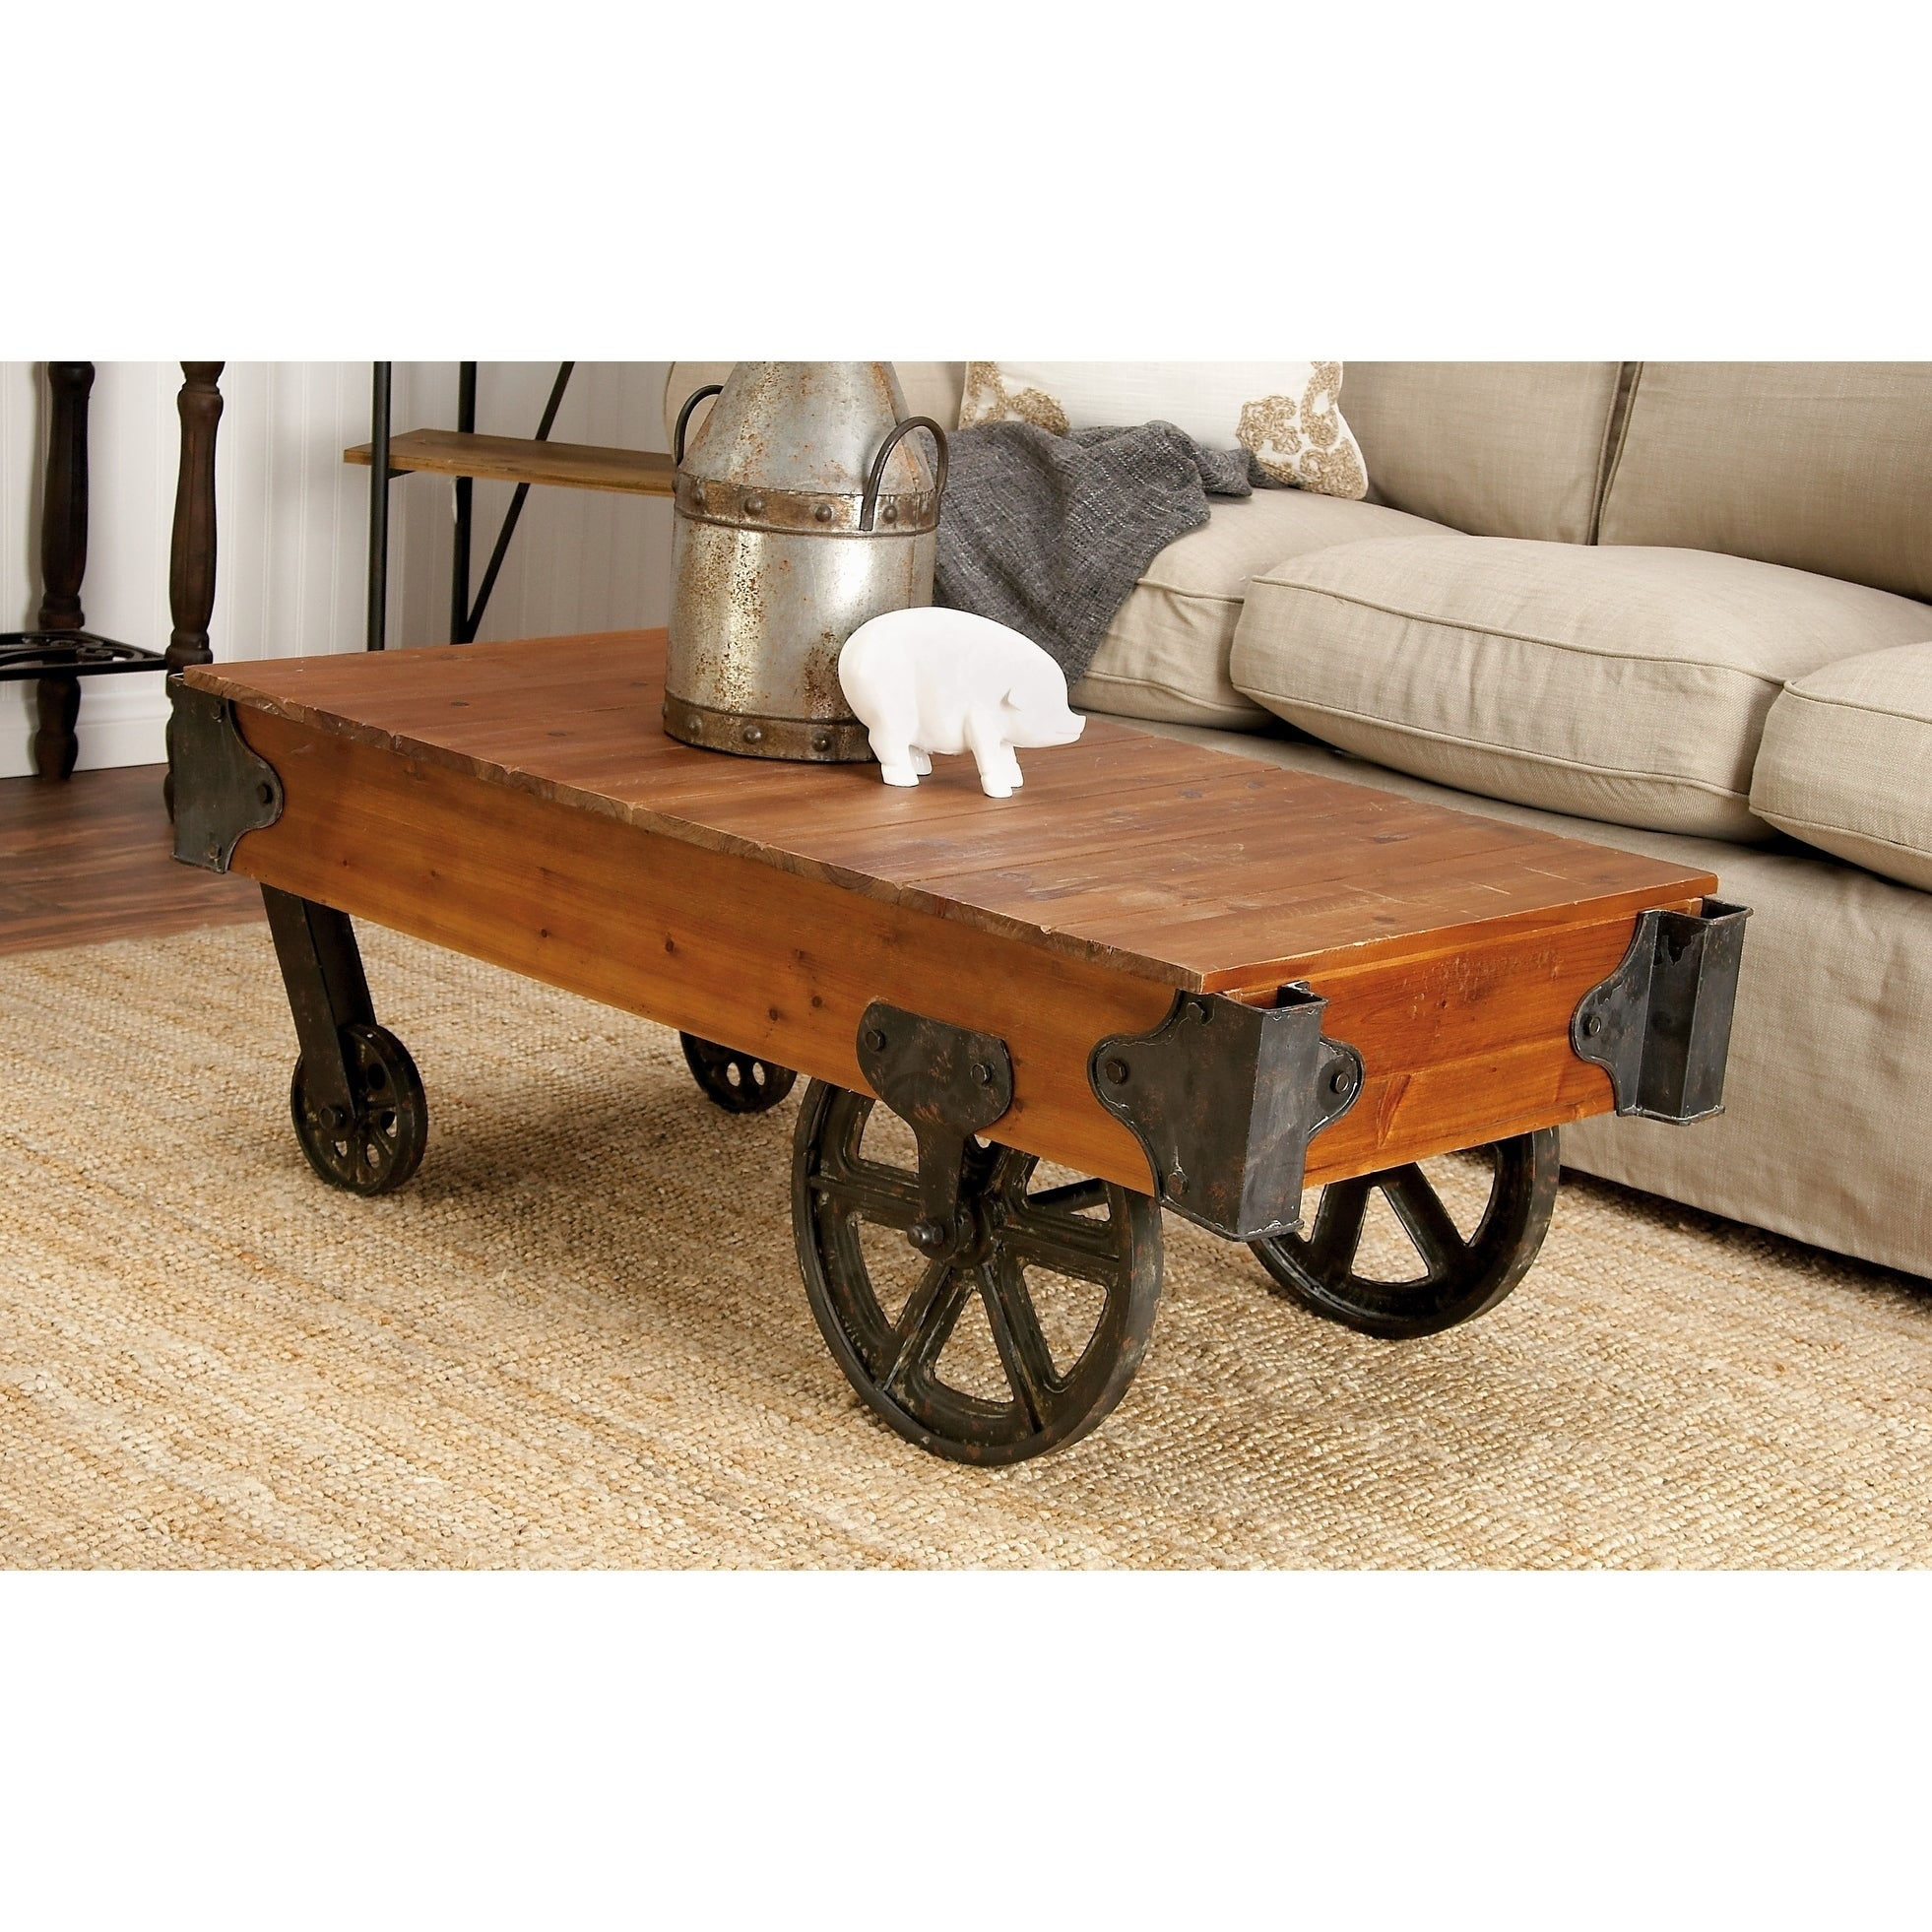 45 X 16 Metal And Wood Cart Coffee Table With Wheels By Studio 350 Free Shipping Today 12223589